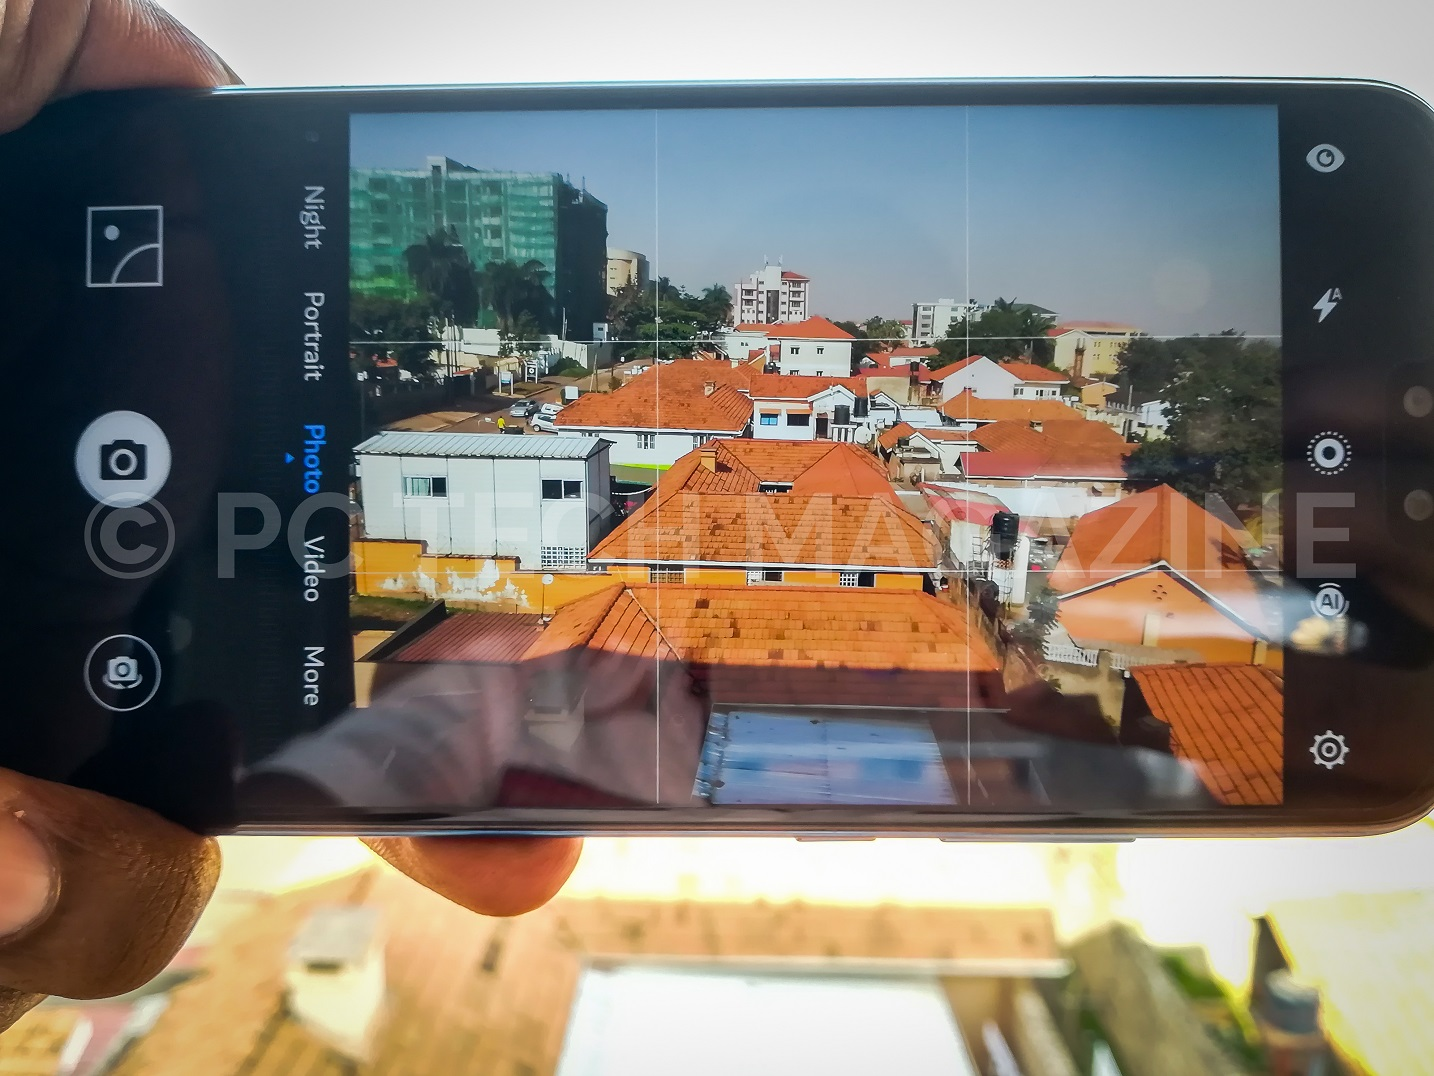 The colors for the display on the Huawei Y9 (2019) appear well balanced and saturated. (Photo - PC TECH MAGAZINE/Olupot Nathan Ernest)